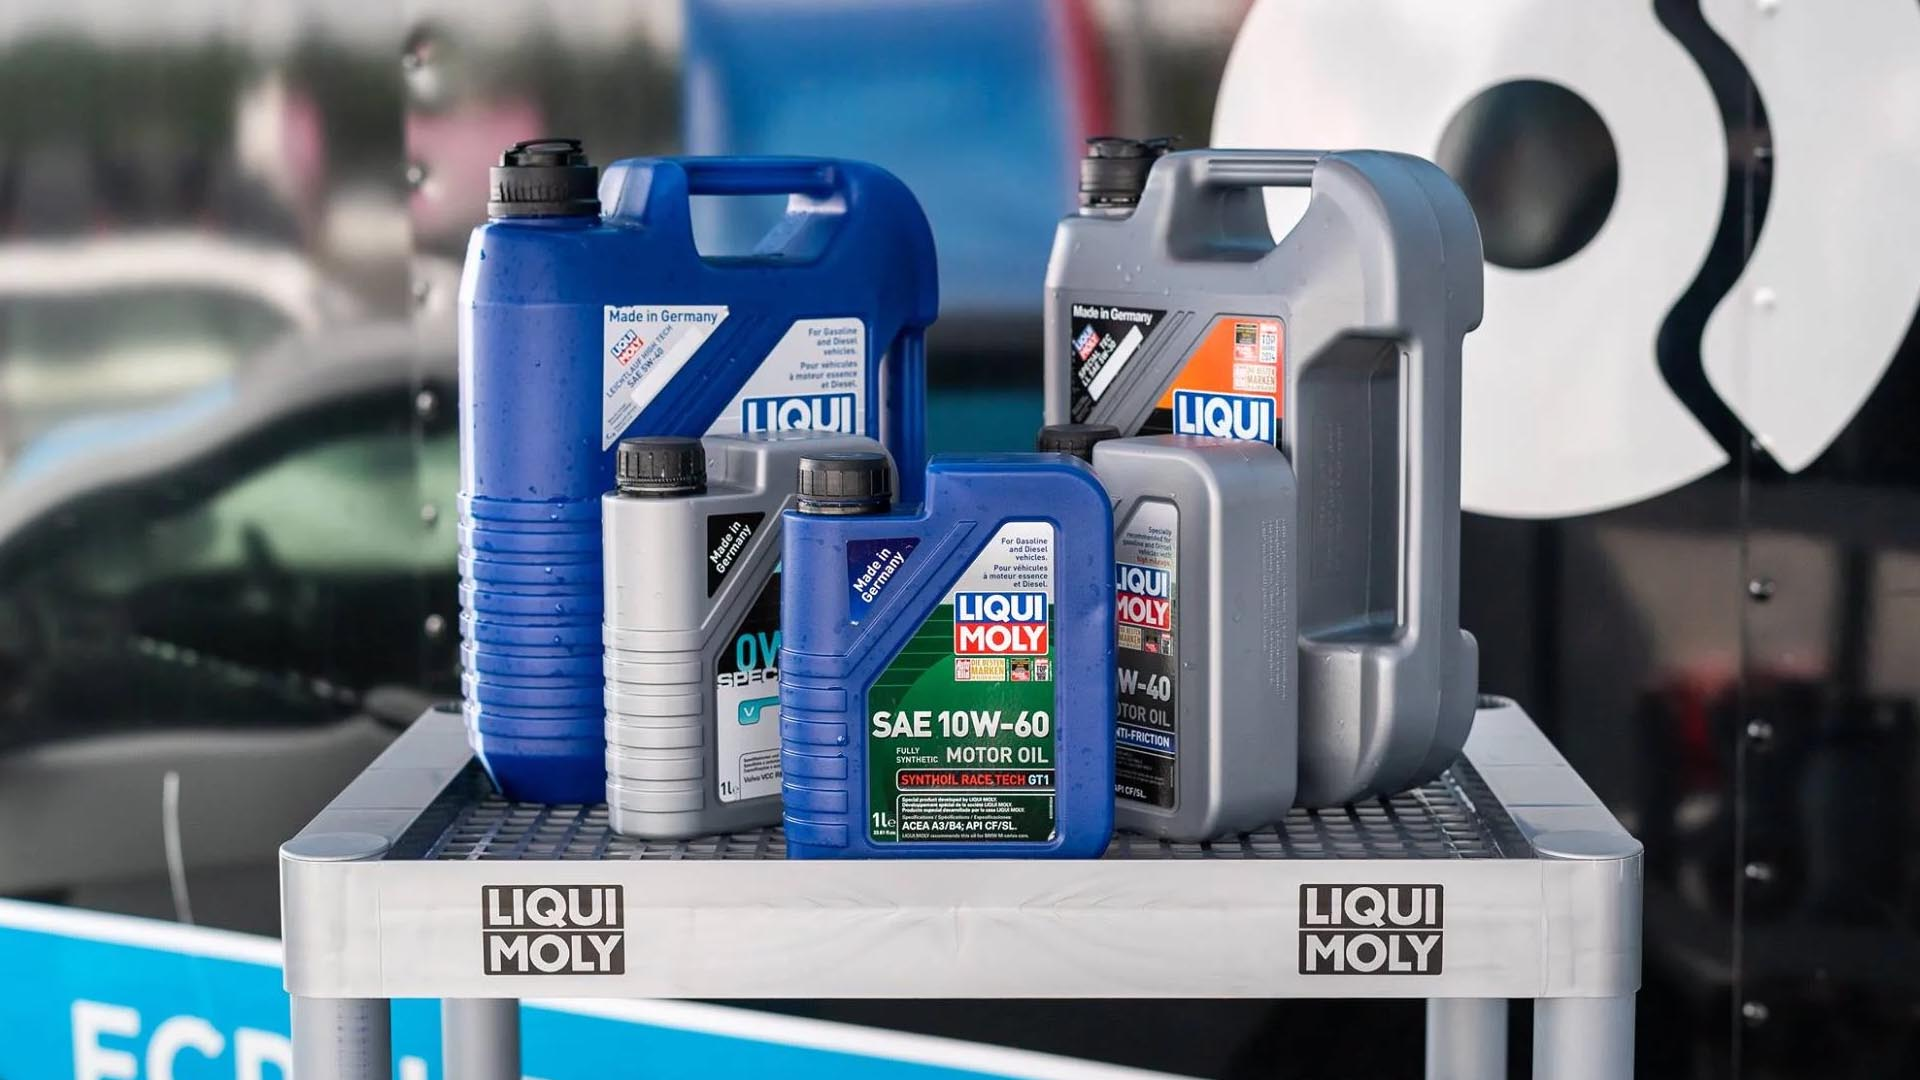 Here's Why LIQUI MOLY Actually Works